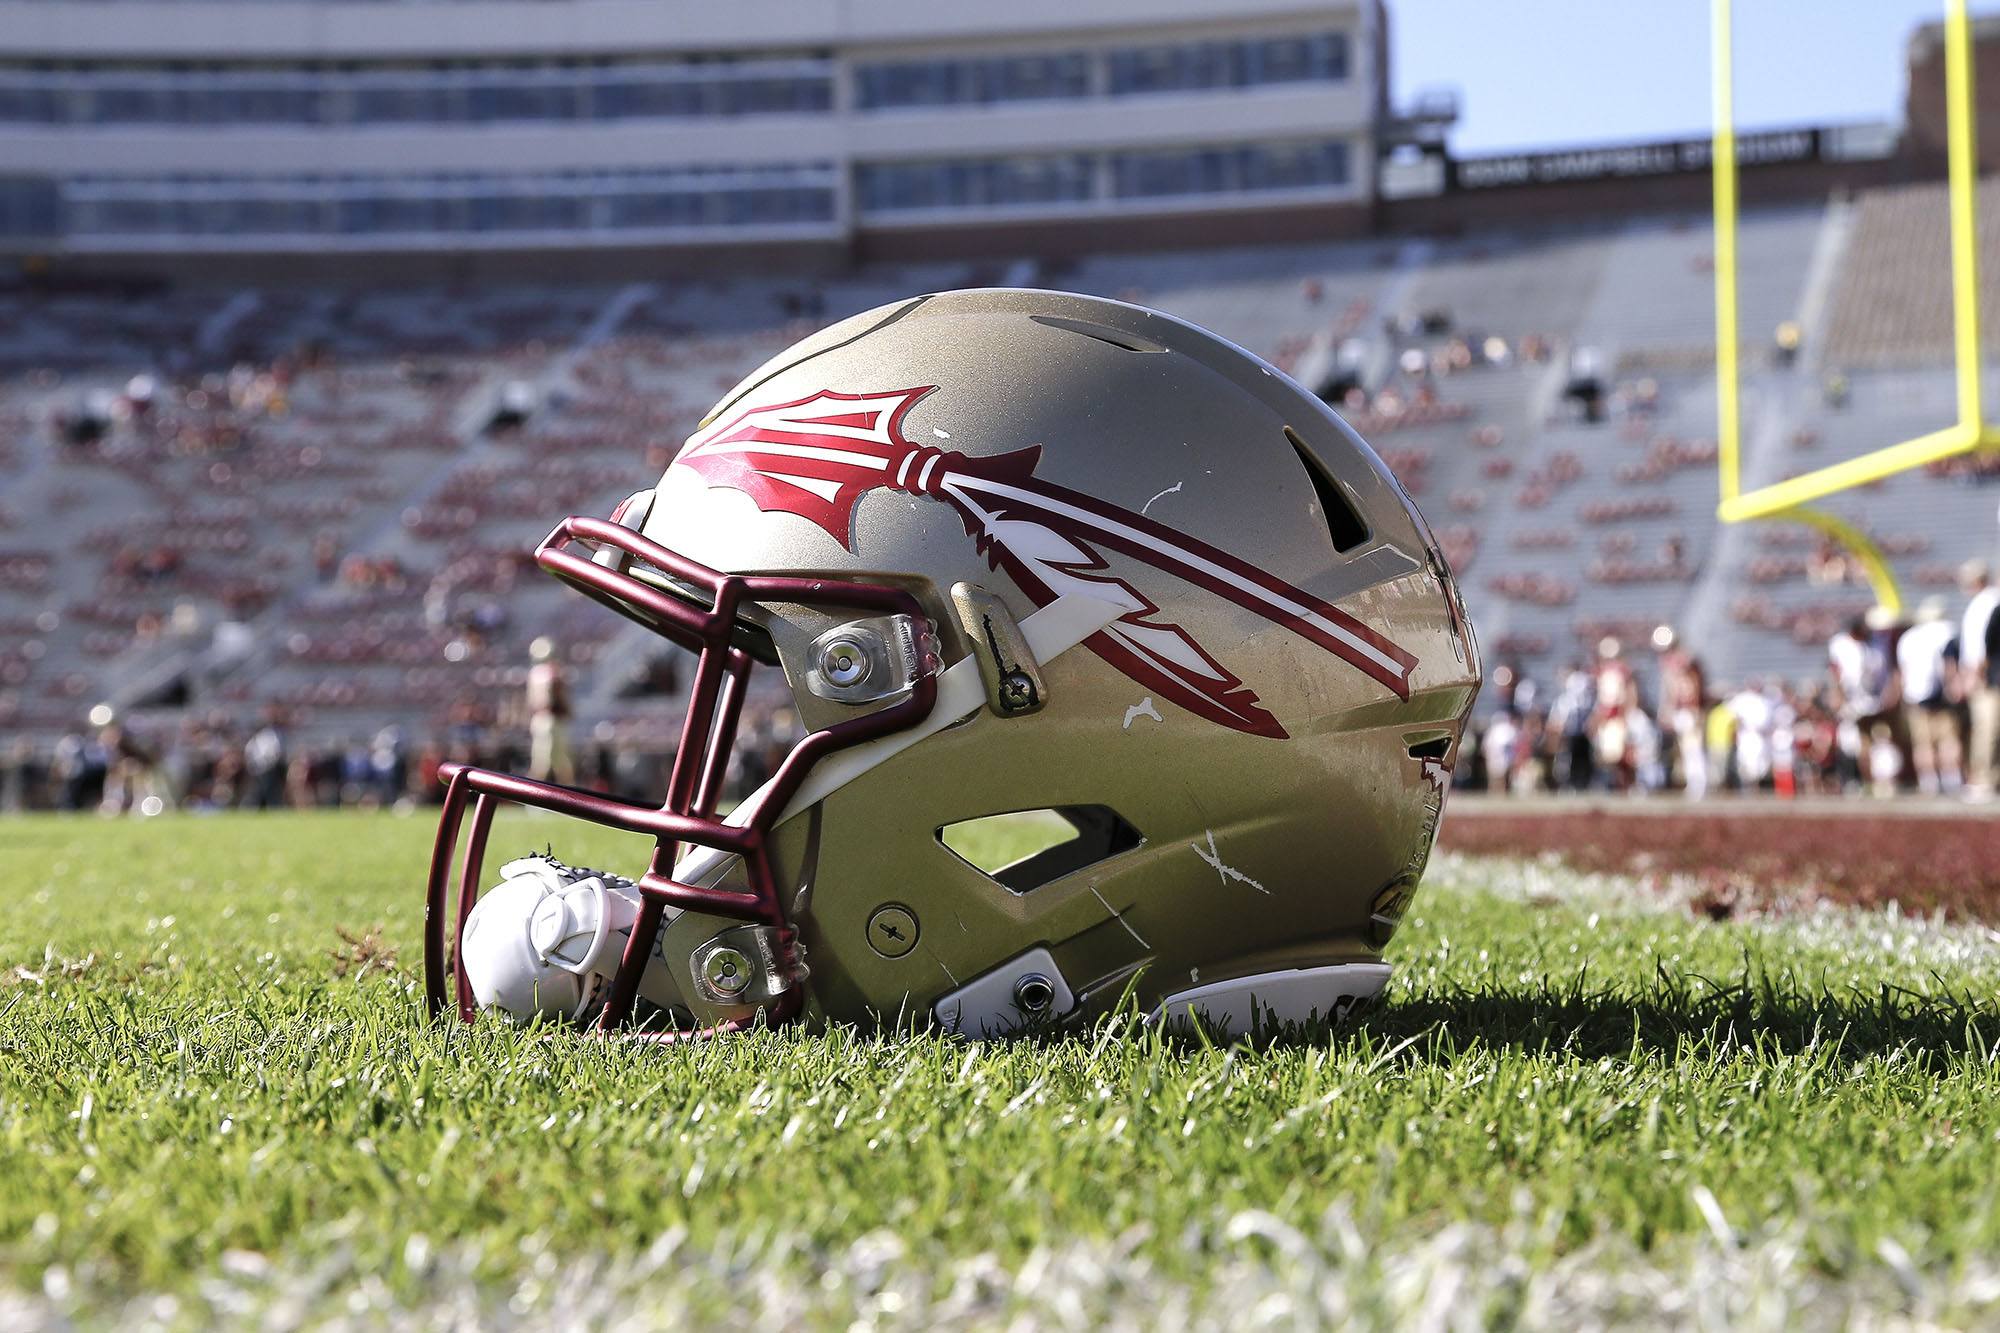 A general view of a Florida State Seminoles Helmet on the field at Doak Campbell Stadium on December 2, 2017.